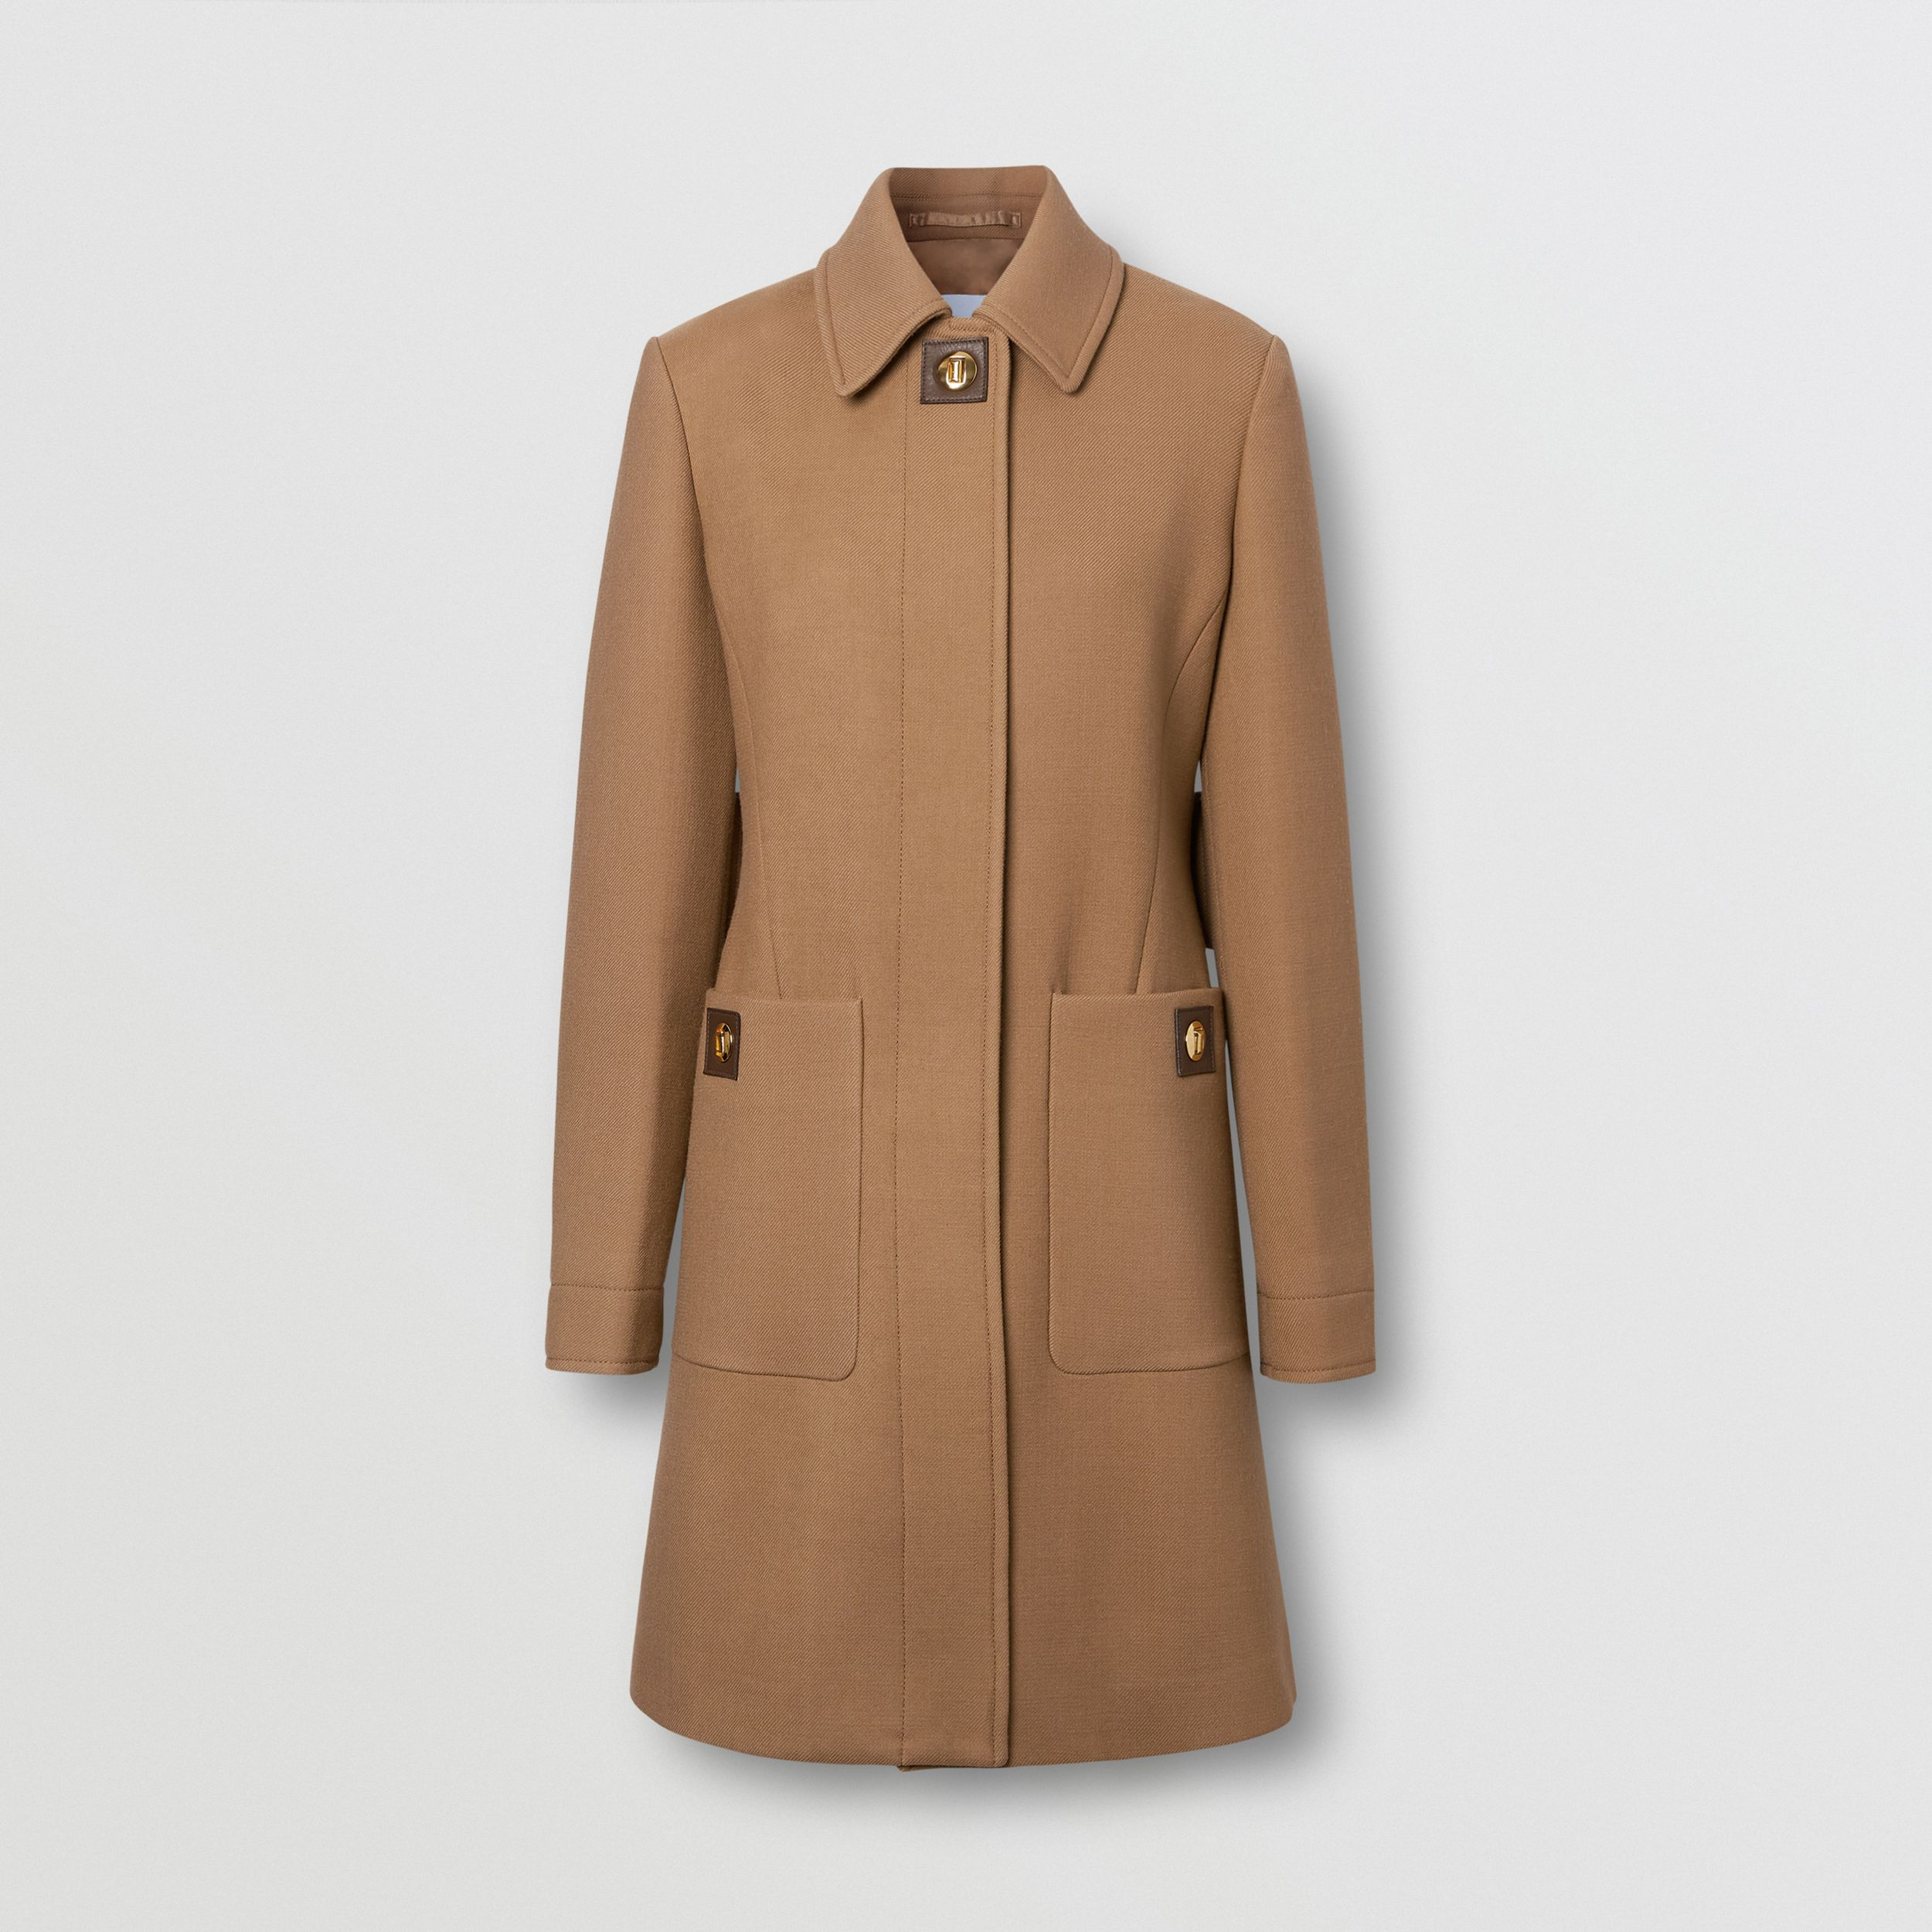 Double-faced Wool Tailored Coat in Fawn - Women | Burberry - 4